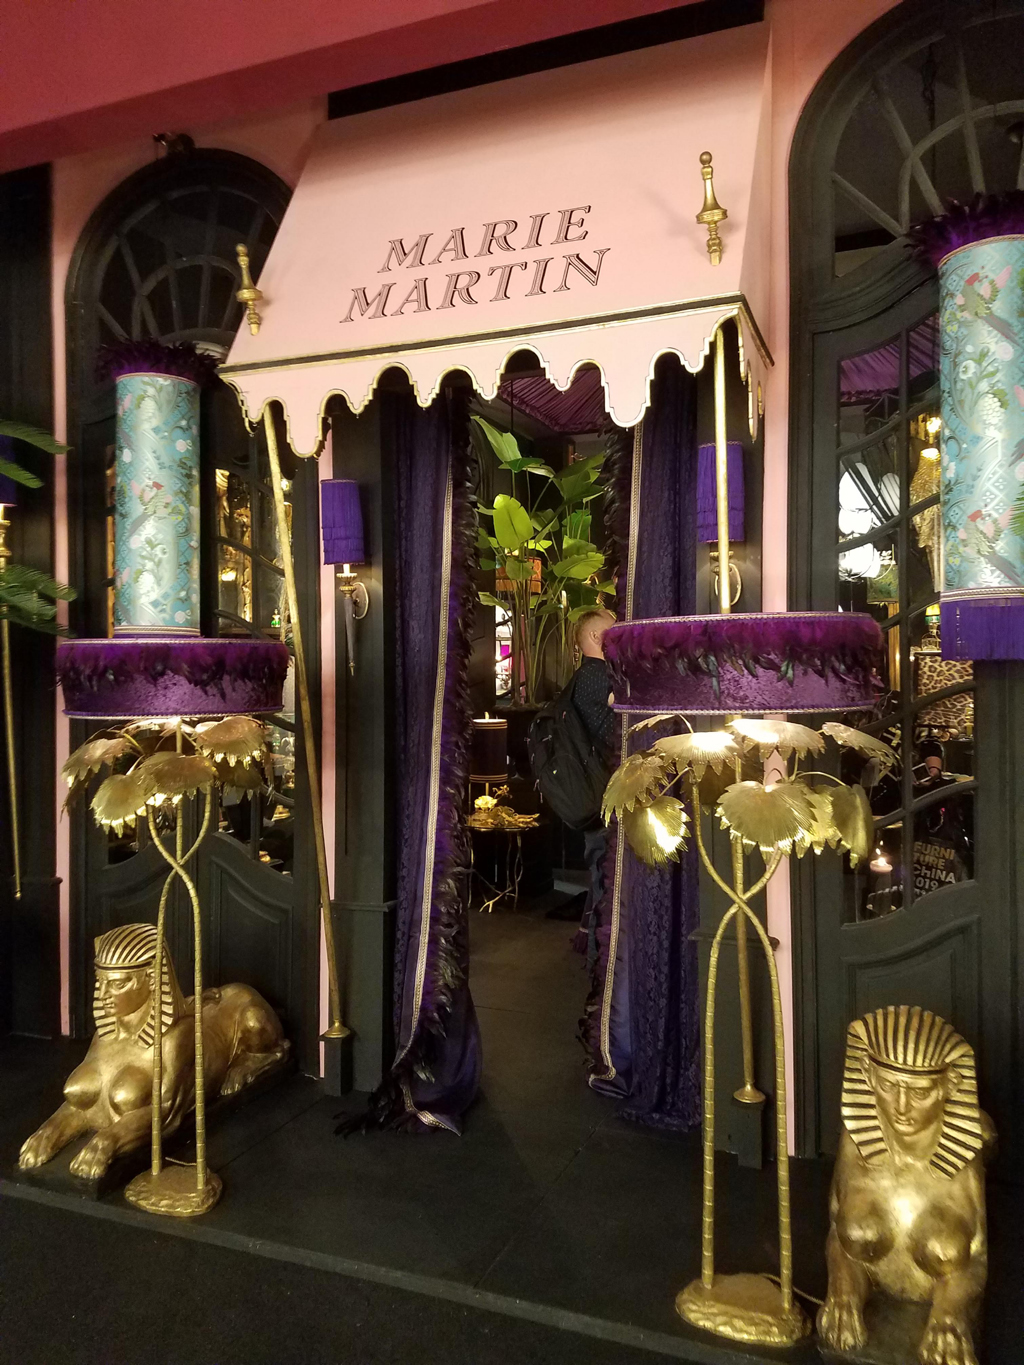 marie martin stand at euroluce 2019 with two tropical inspired purple and gold chandeliers and a pink awning outfront